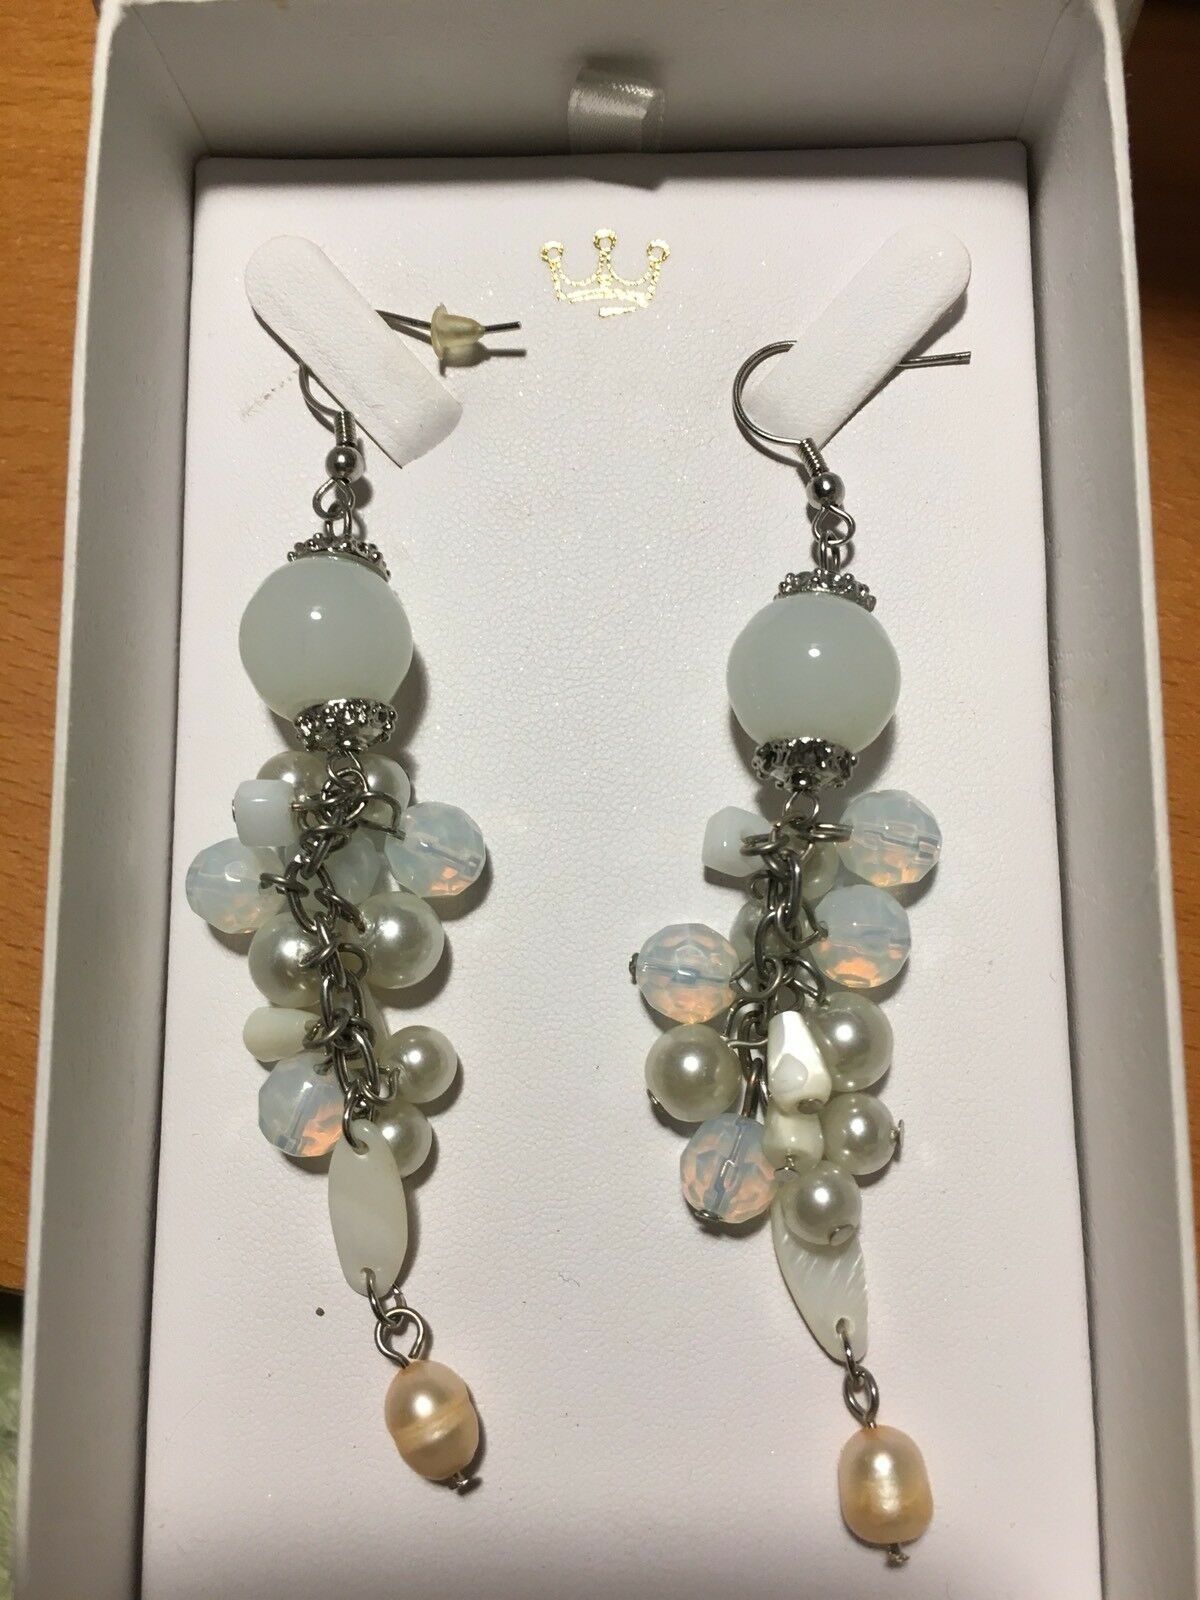 PERLA CANARIA Earrings NWT jewelry exclusive Spain Spain Spain Design  PEARL SNOW 6eb8b8